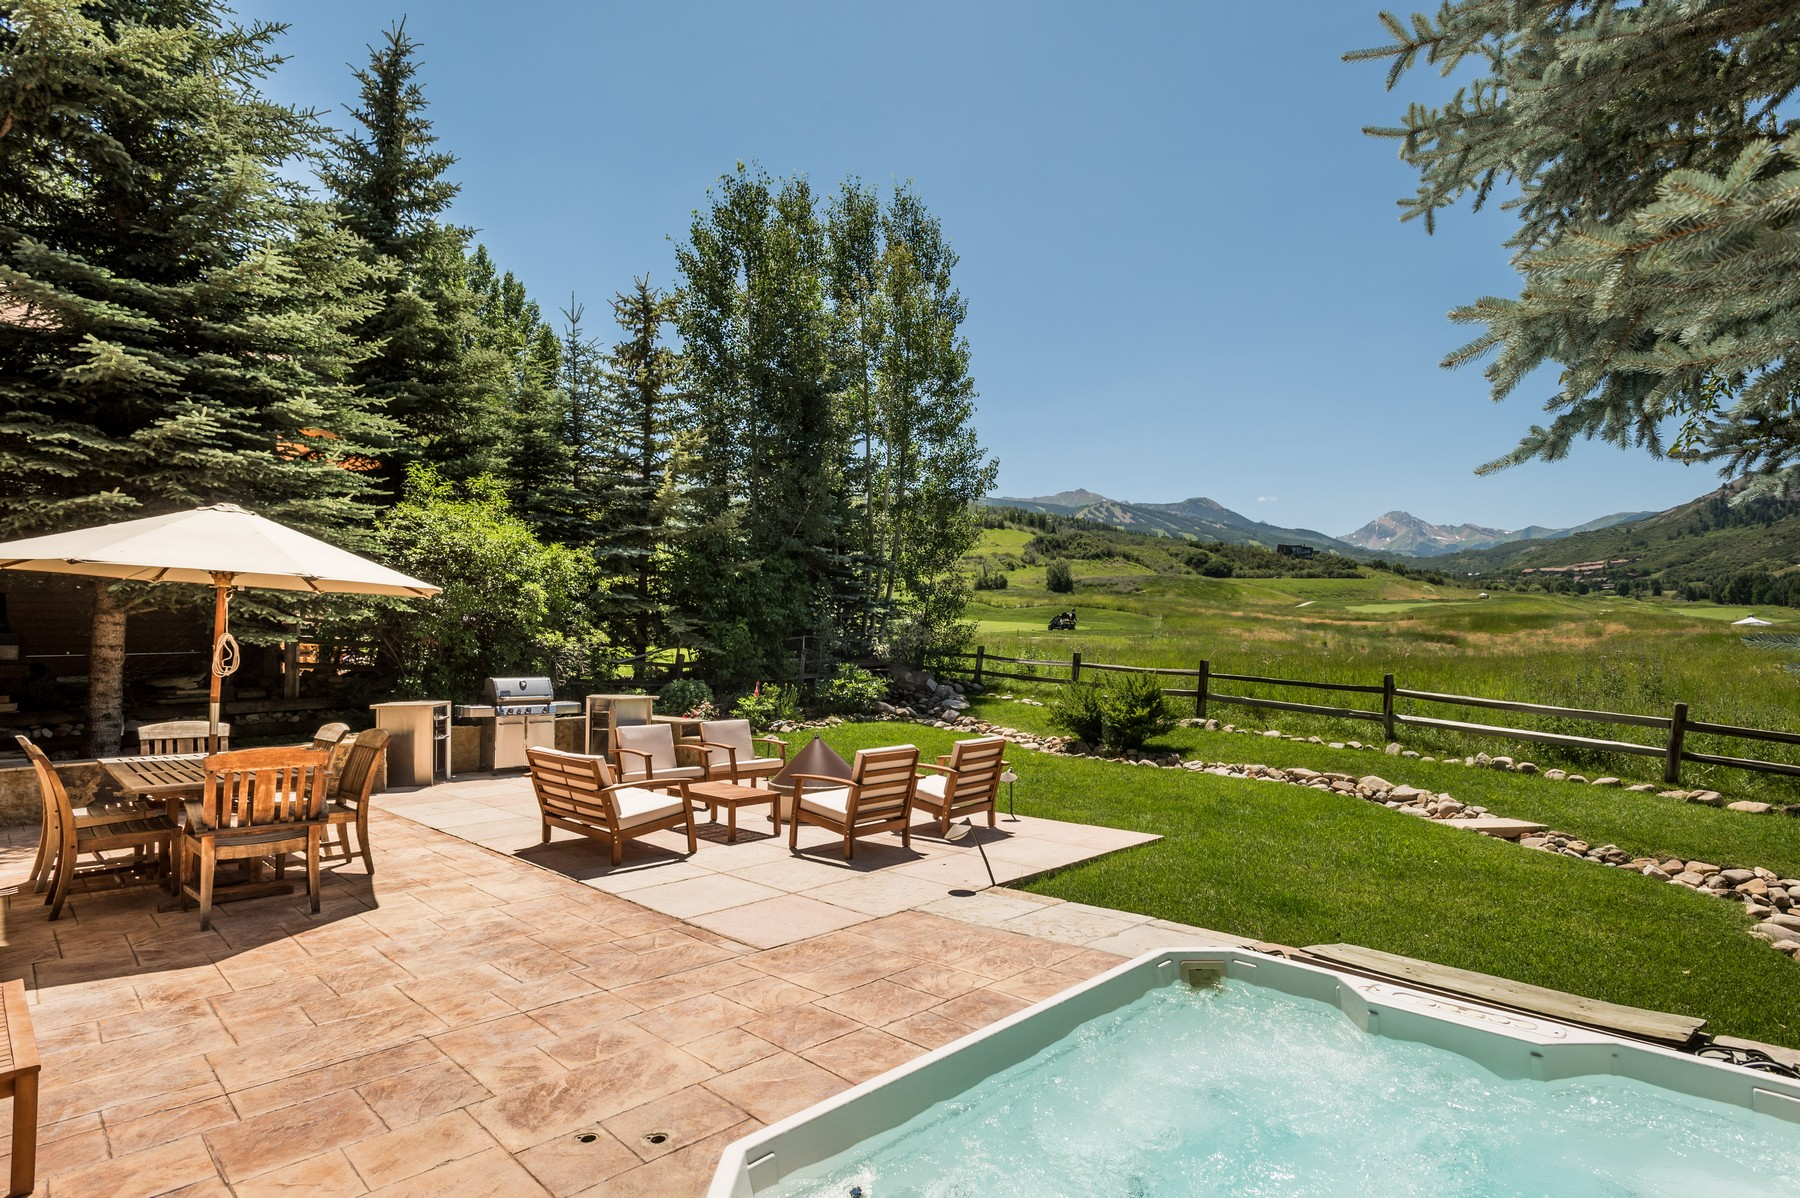 Single Family Home for Sale at Clean Lines, Big Views 477 Fairway Drive Snowmass Village, Colorado 81615 United States